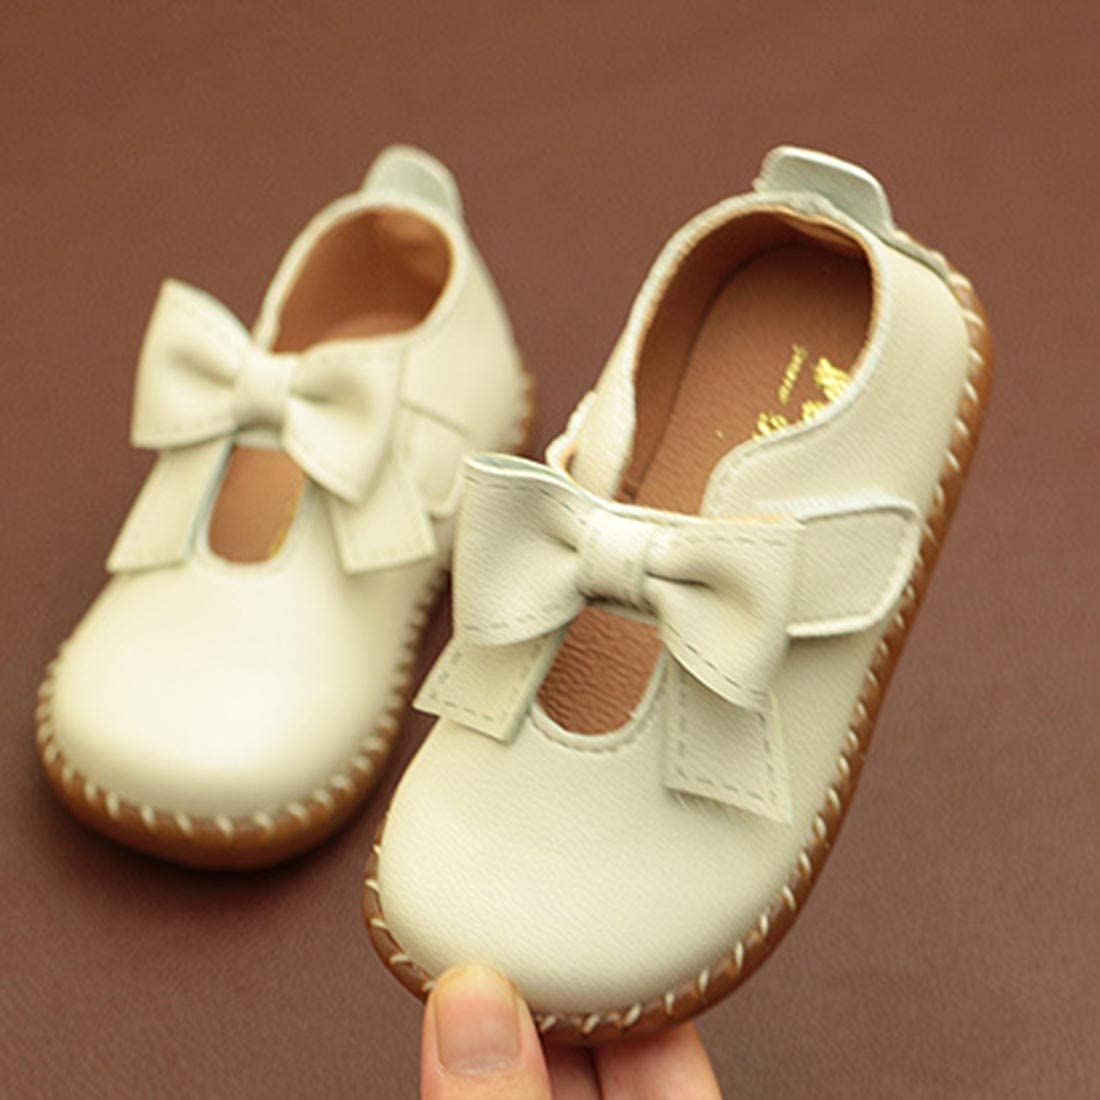 YIBLBOX Girls PU Leather Mary Janes Baby Toddler First Walking Shoes for Parties and Special Occasions